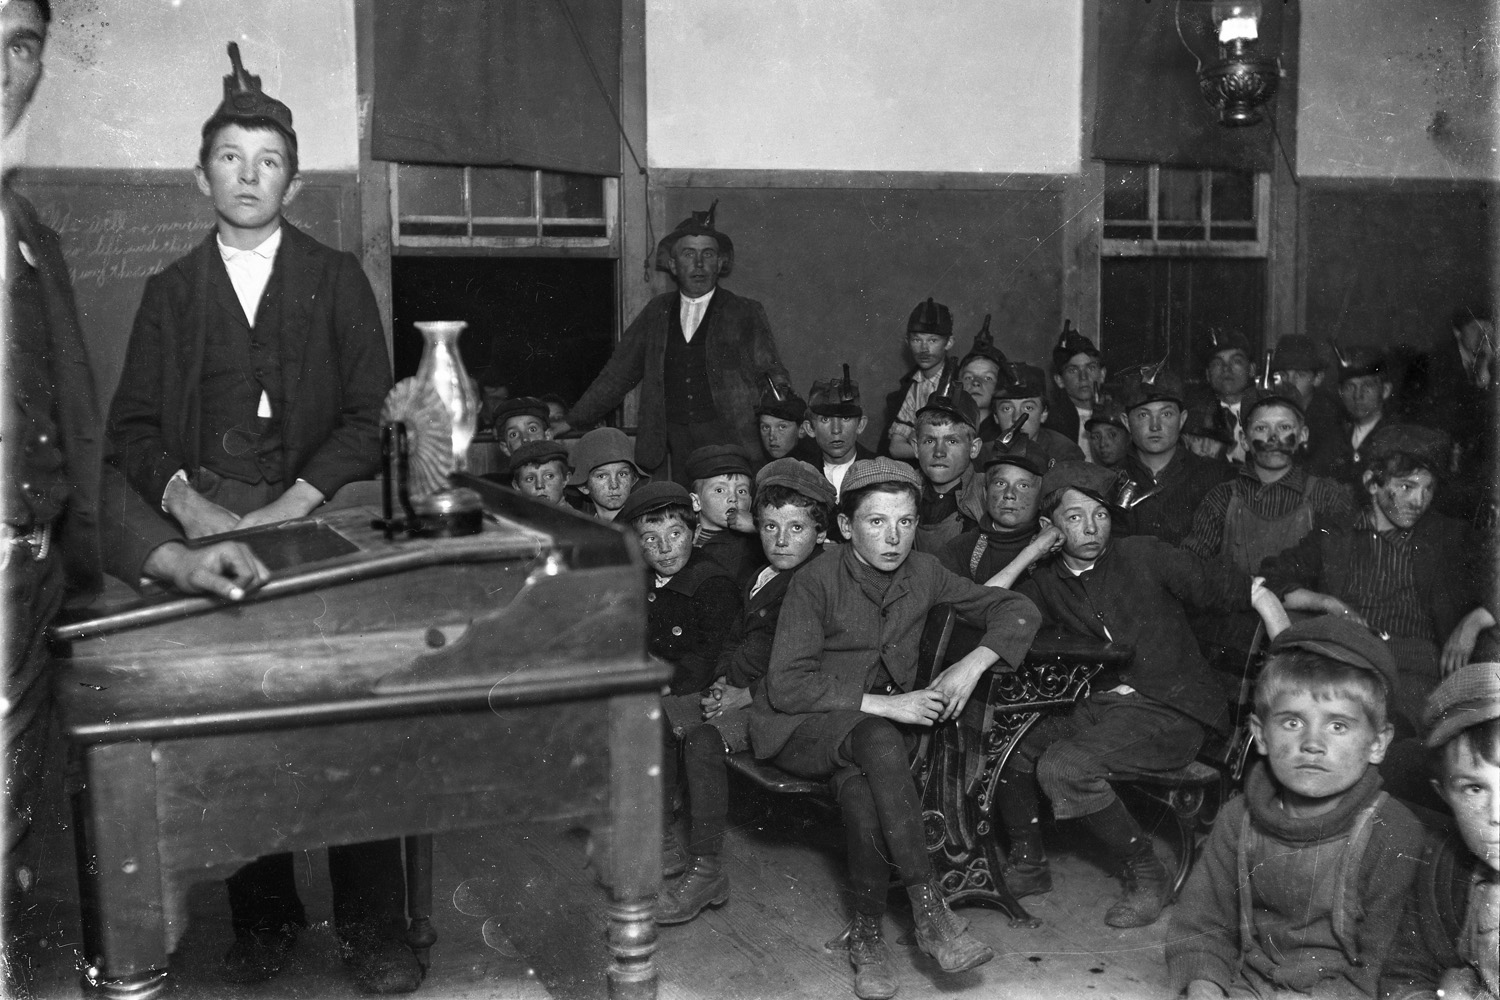 Frank E. Schoonover, Breaker Boys Meeting , Scranton, Pennsylvania , 1902